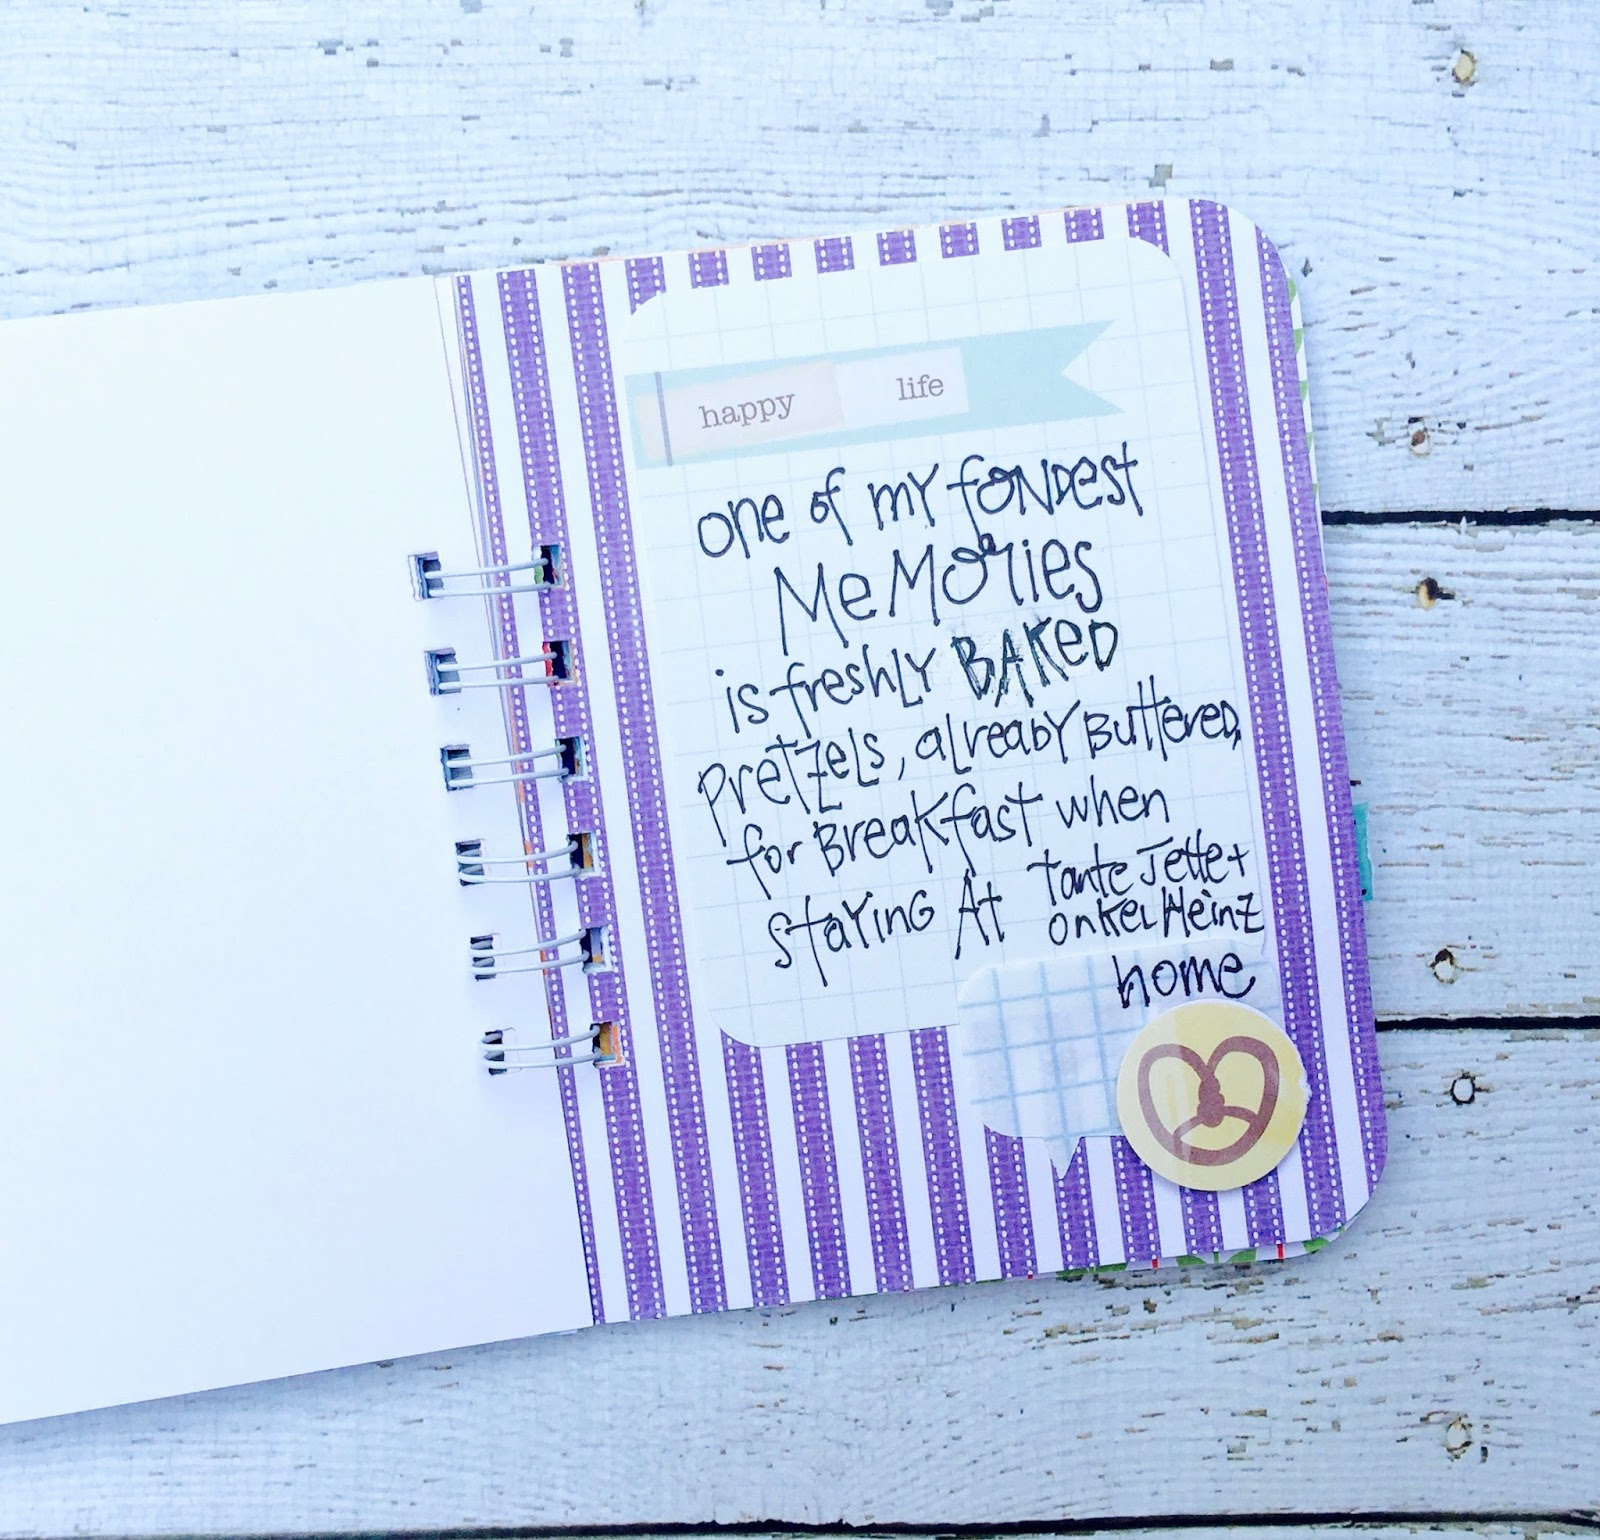 #purple #stripes #pretzel #smashbooking #smashbook #journal #notebook